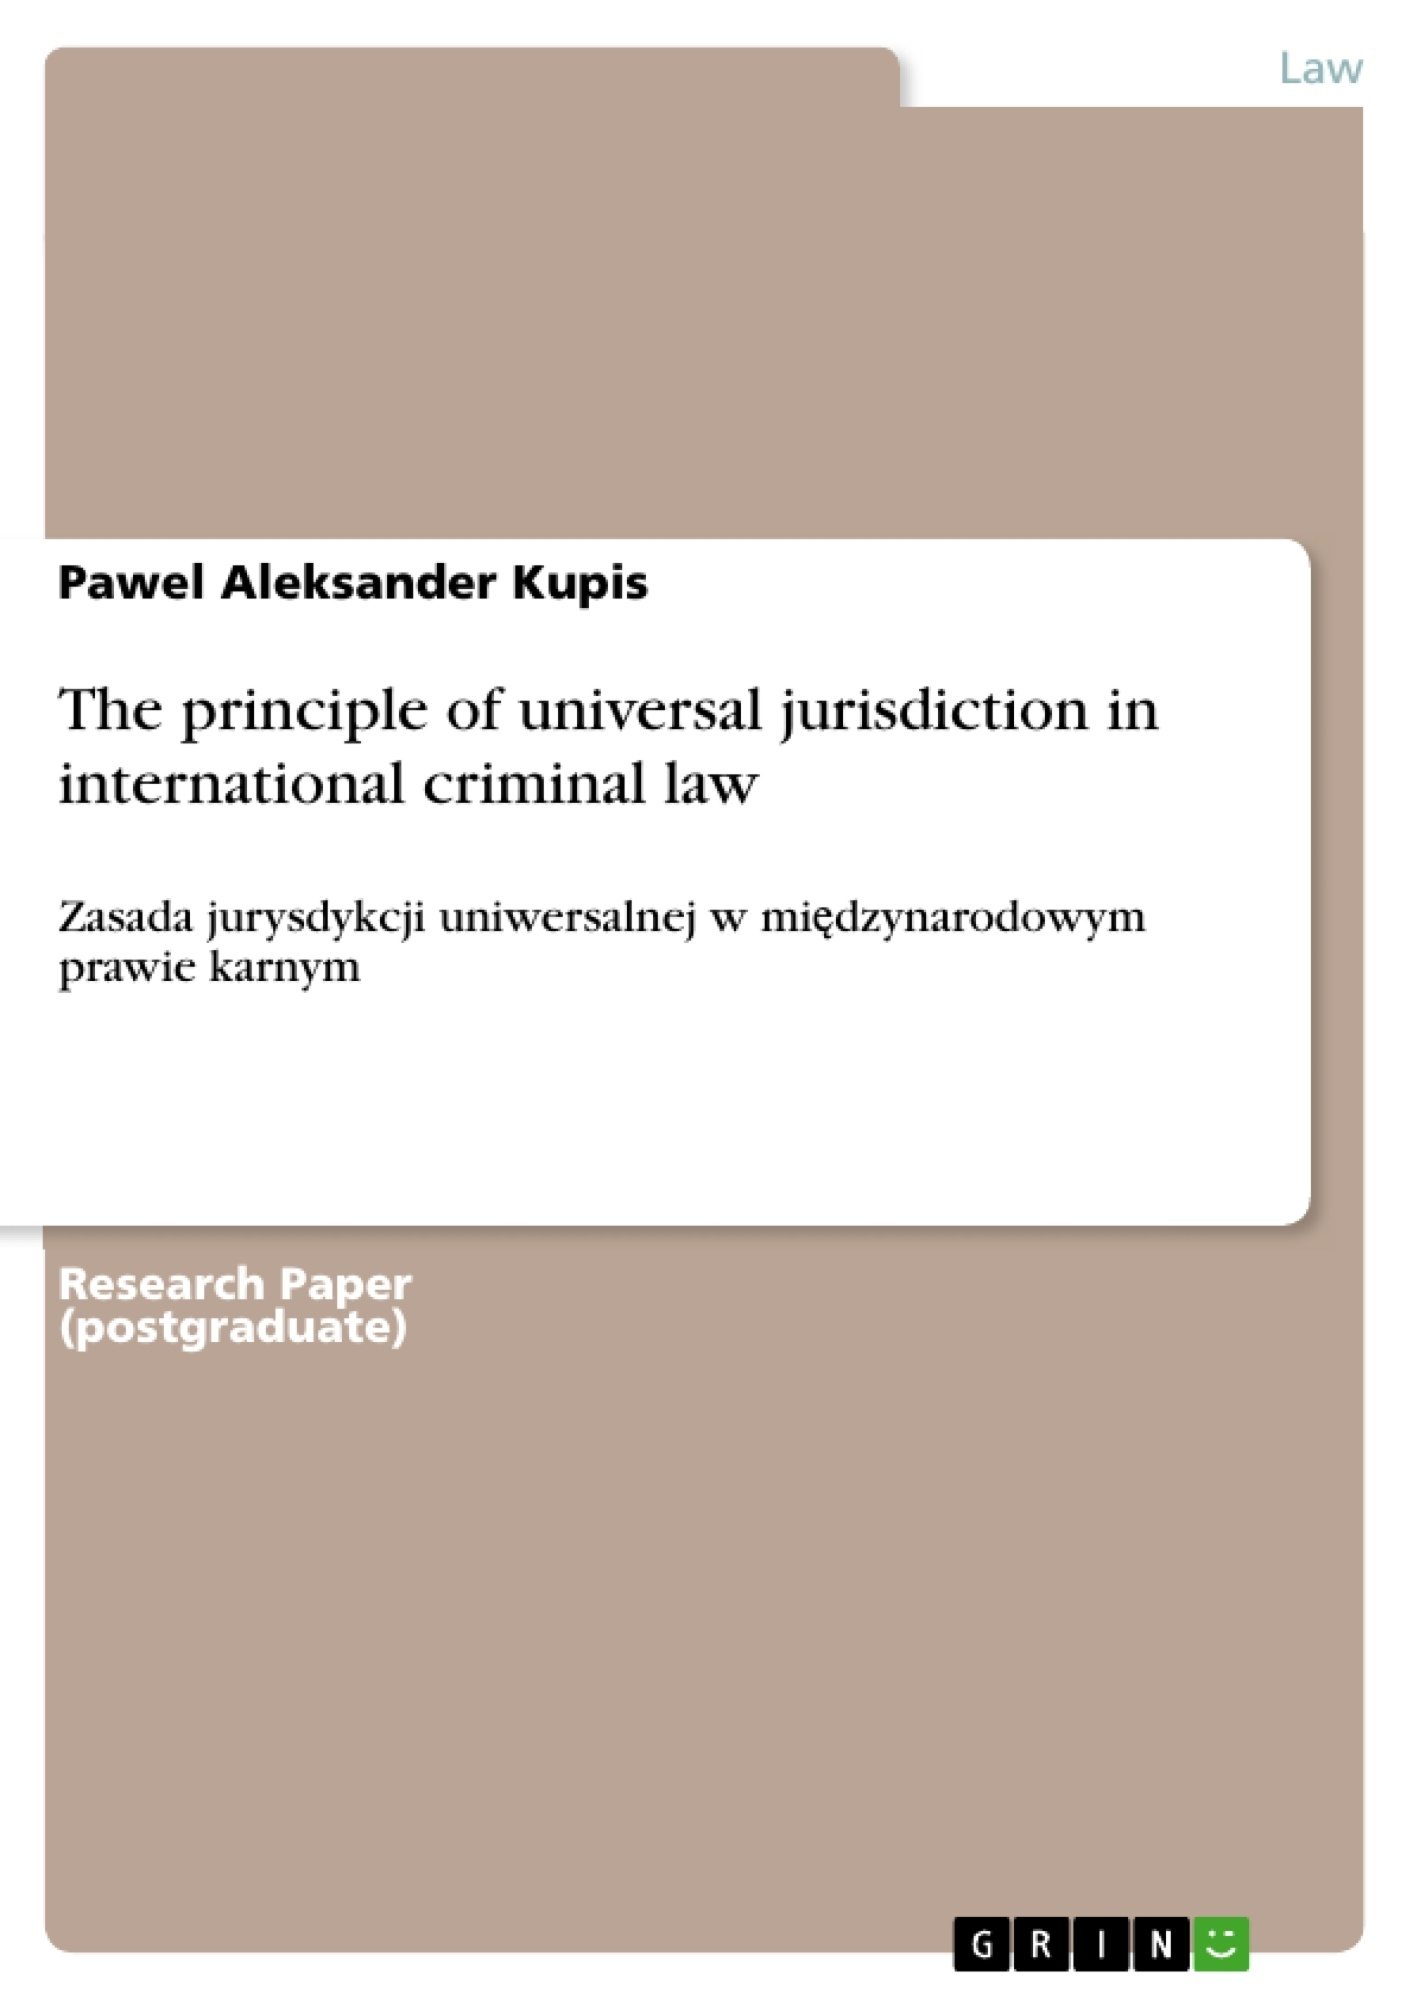 Title: The principle of universal jurisdiction in international criminal law